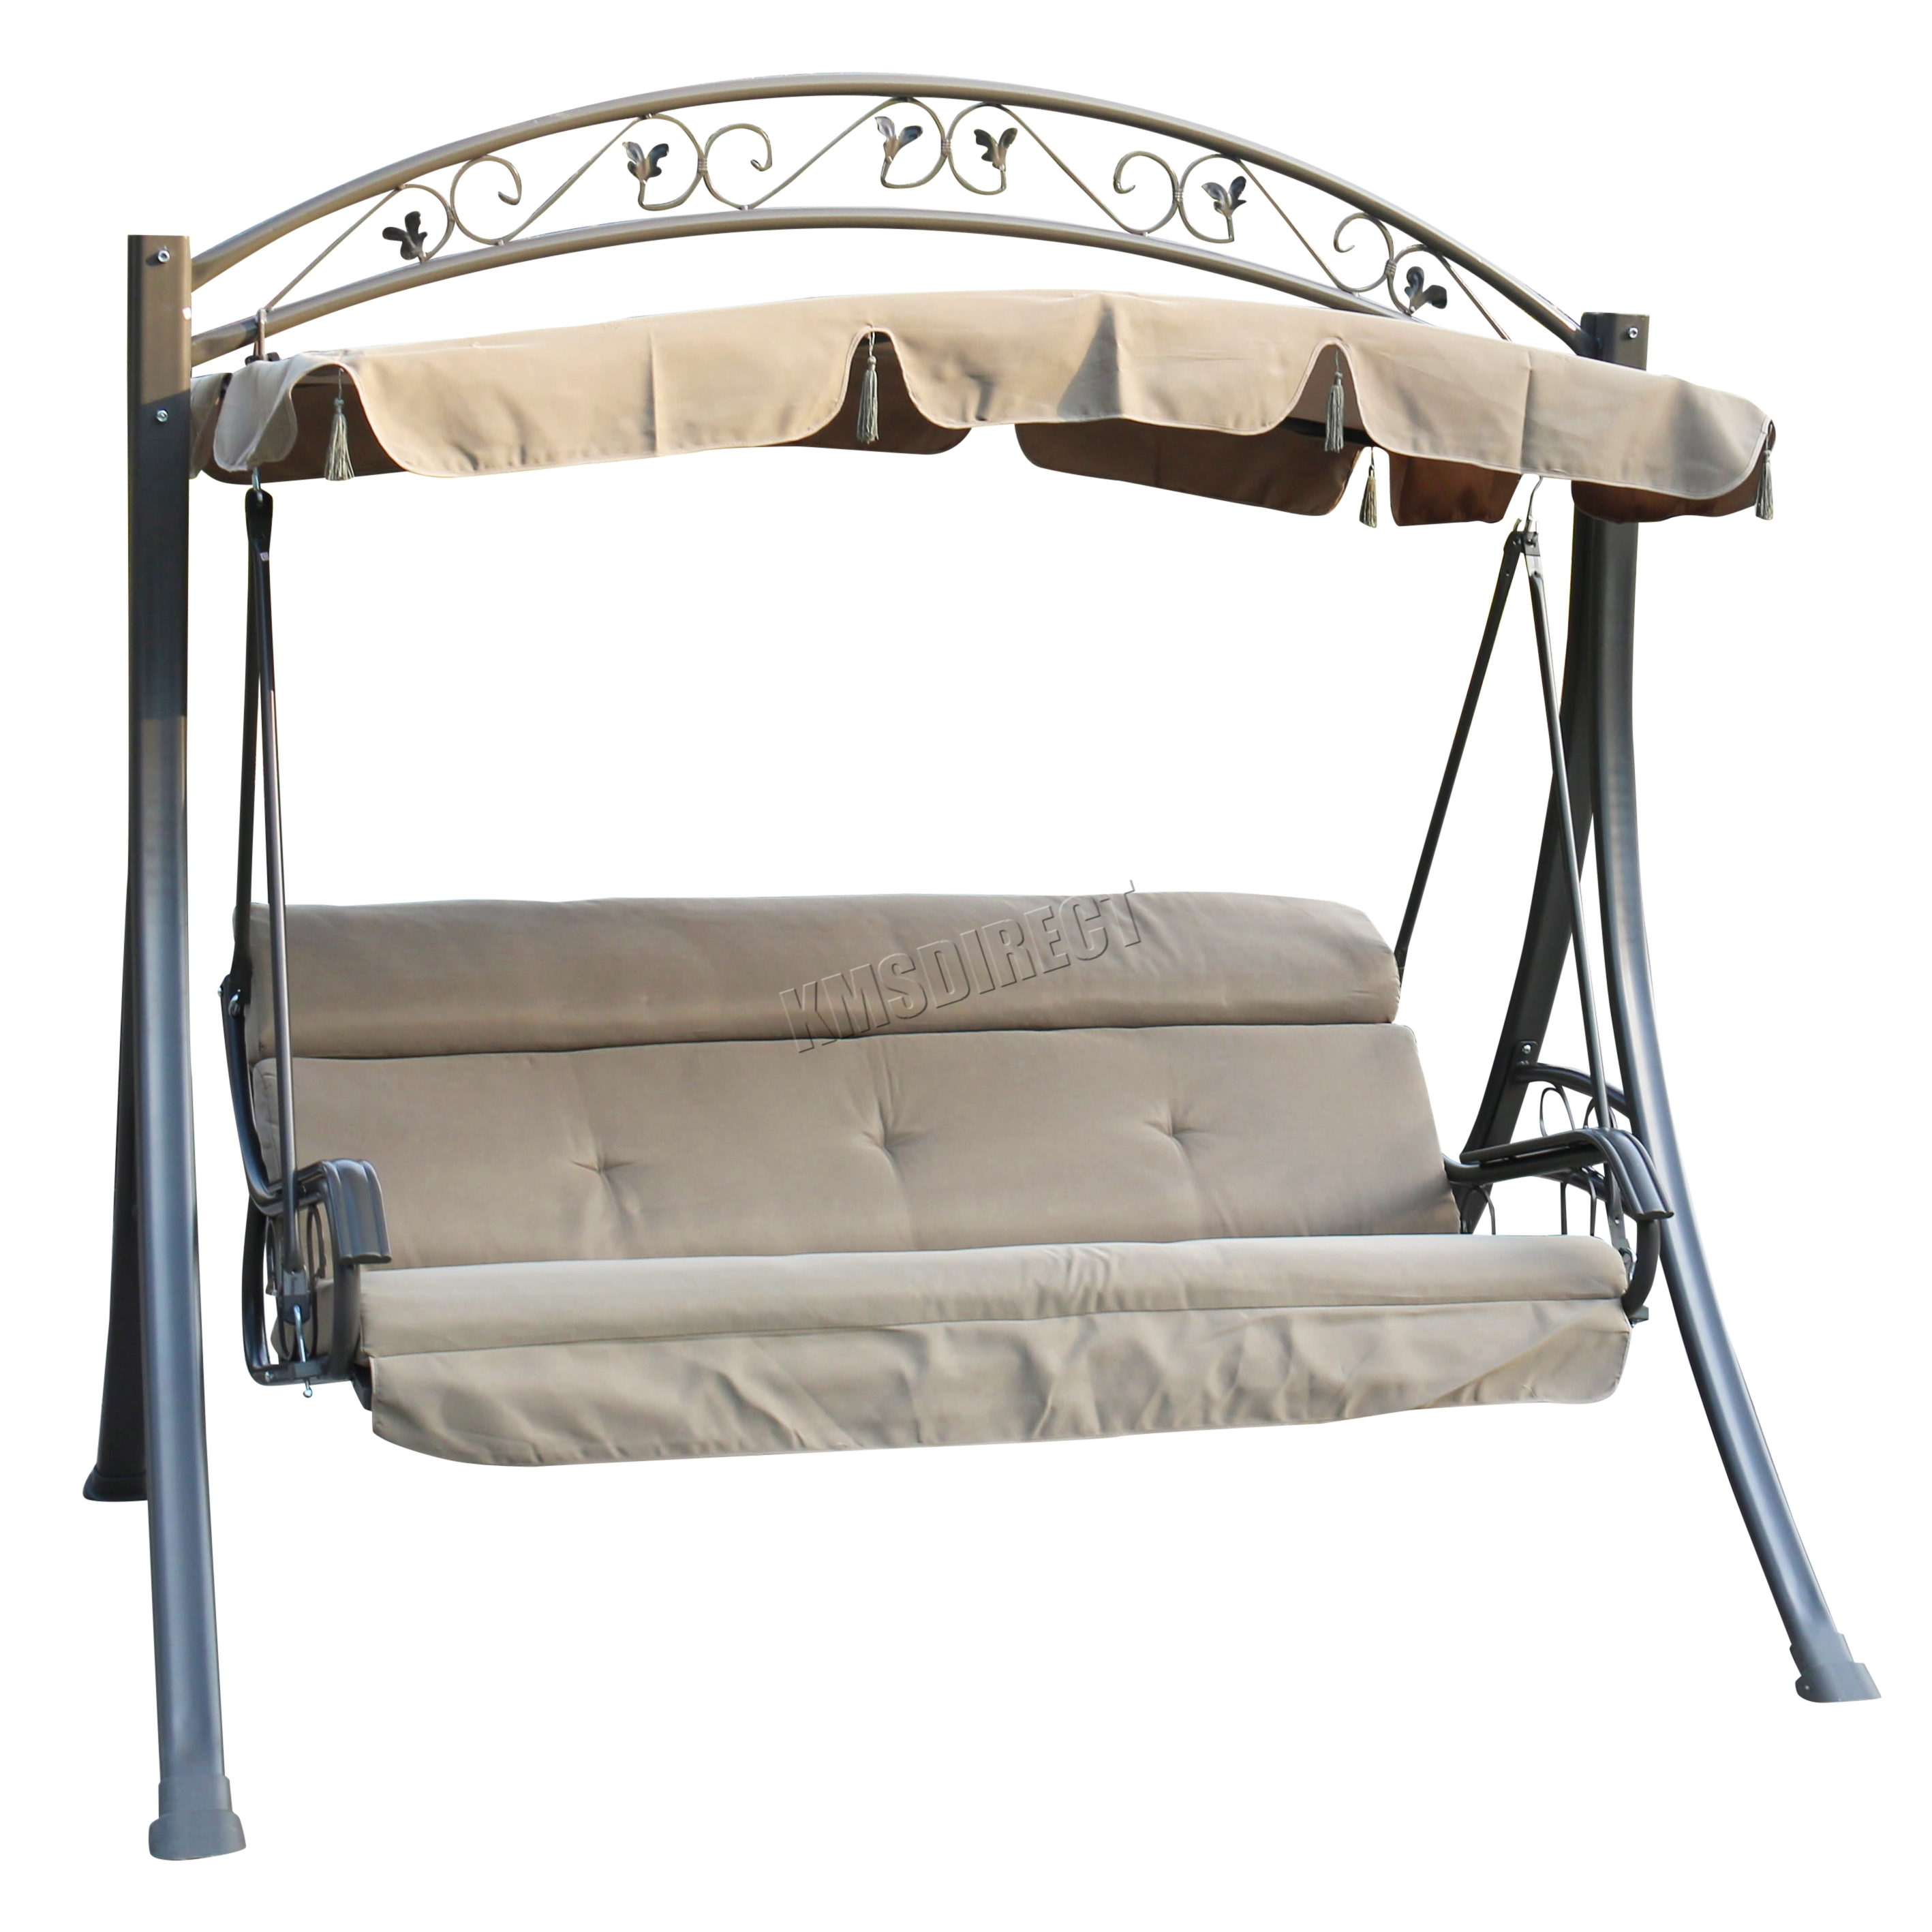 Foxhunter Garden Metal Swing Hammock 3 Seater Chair Bench